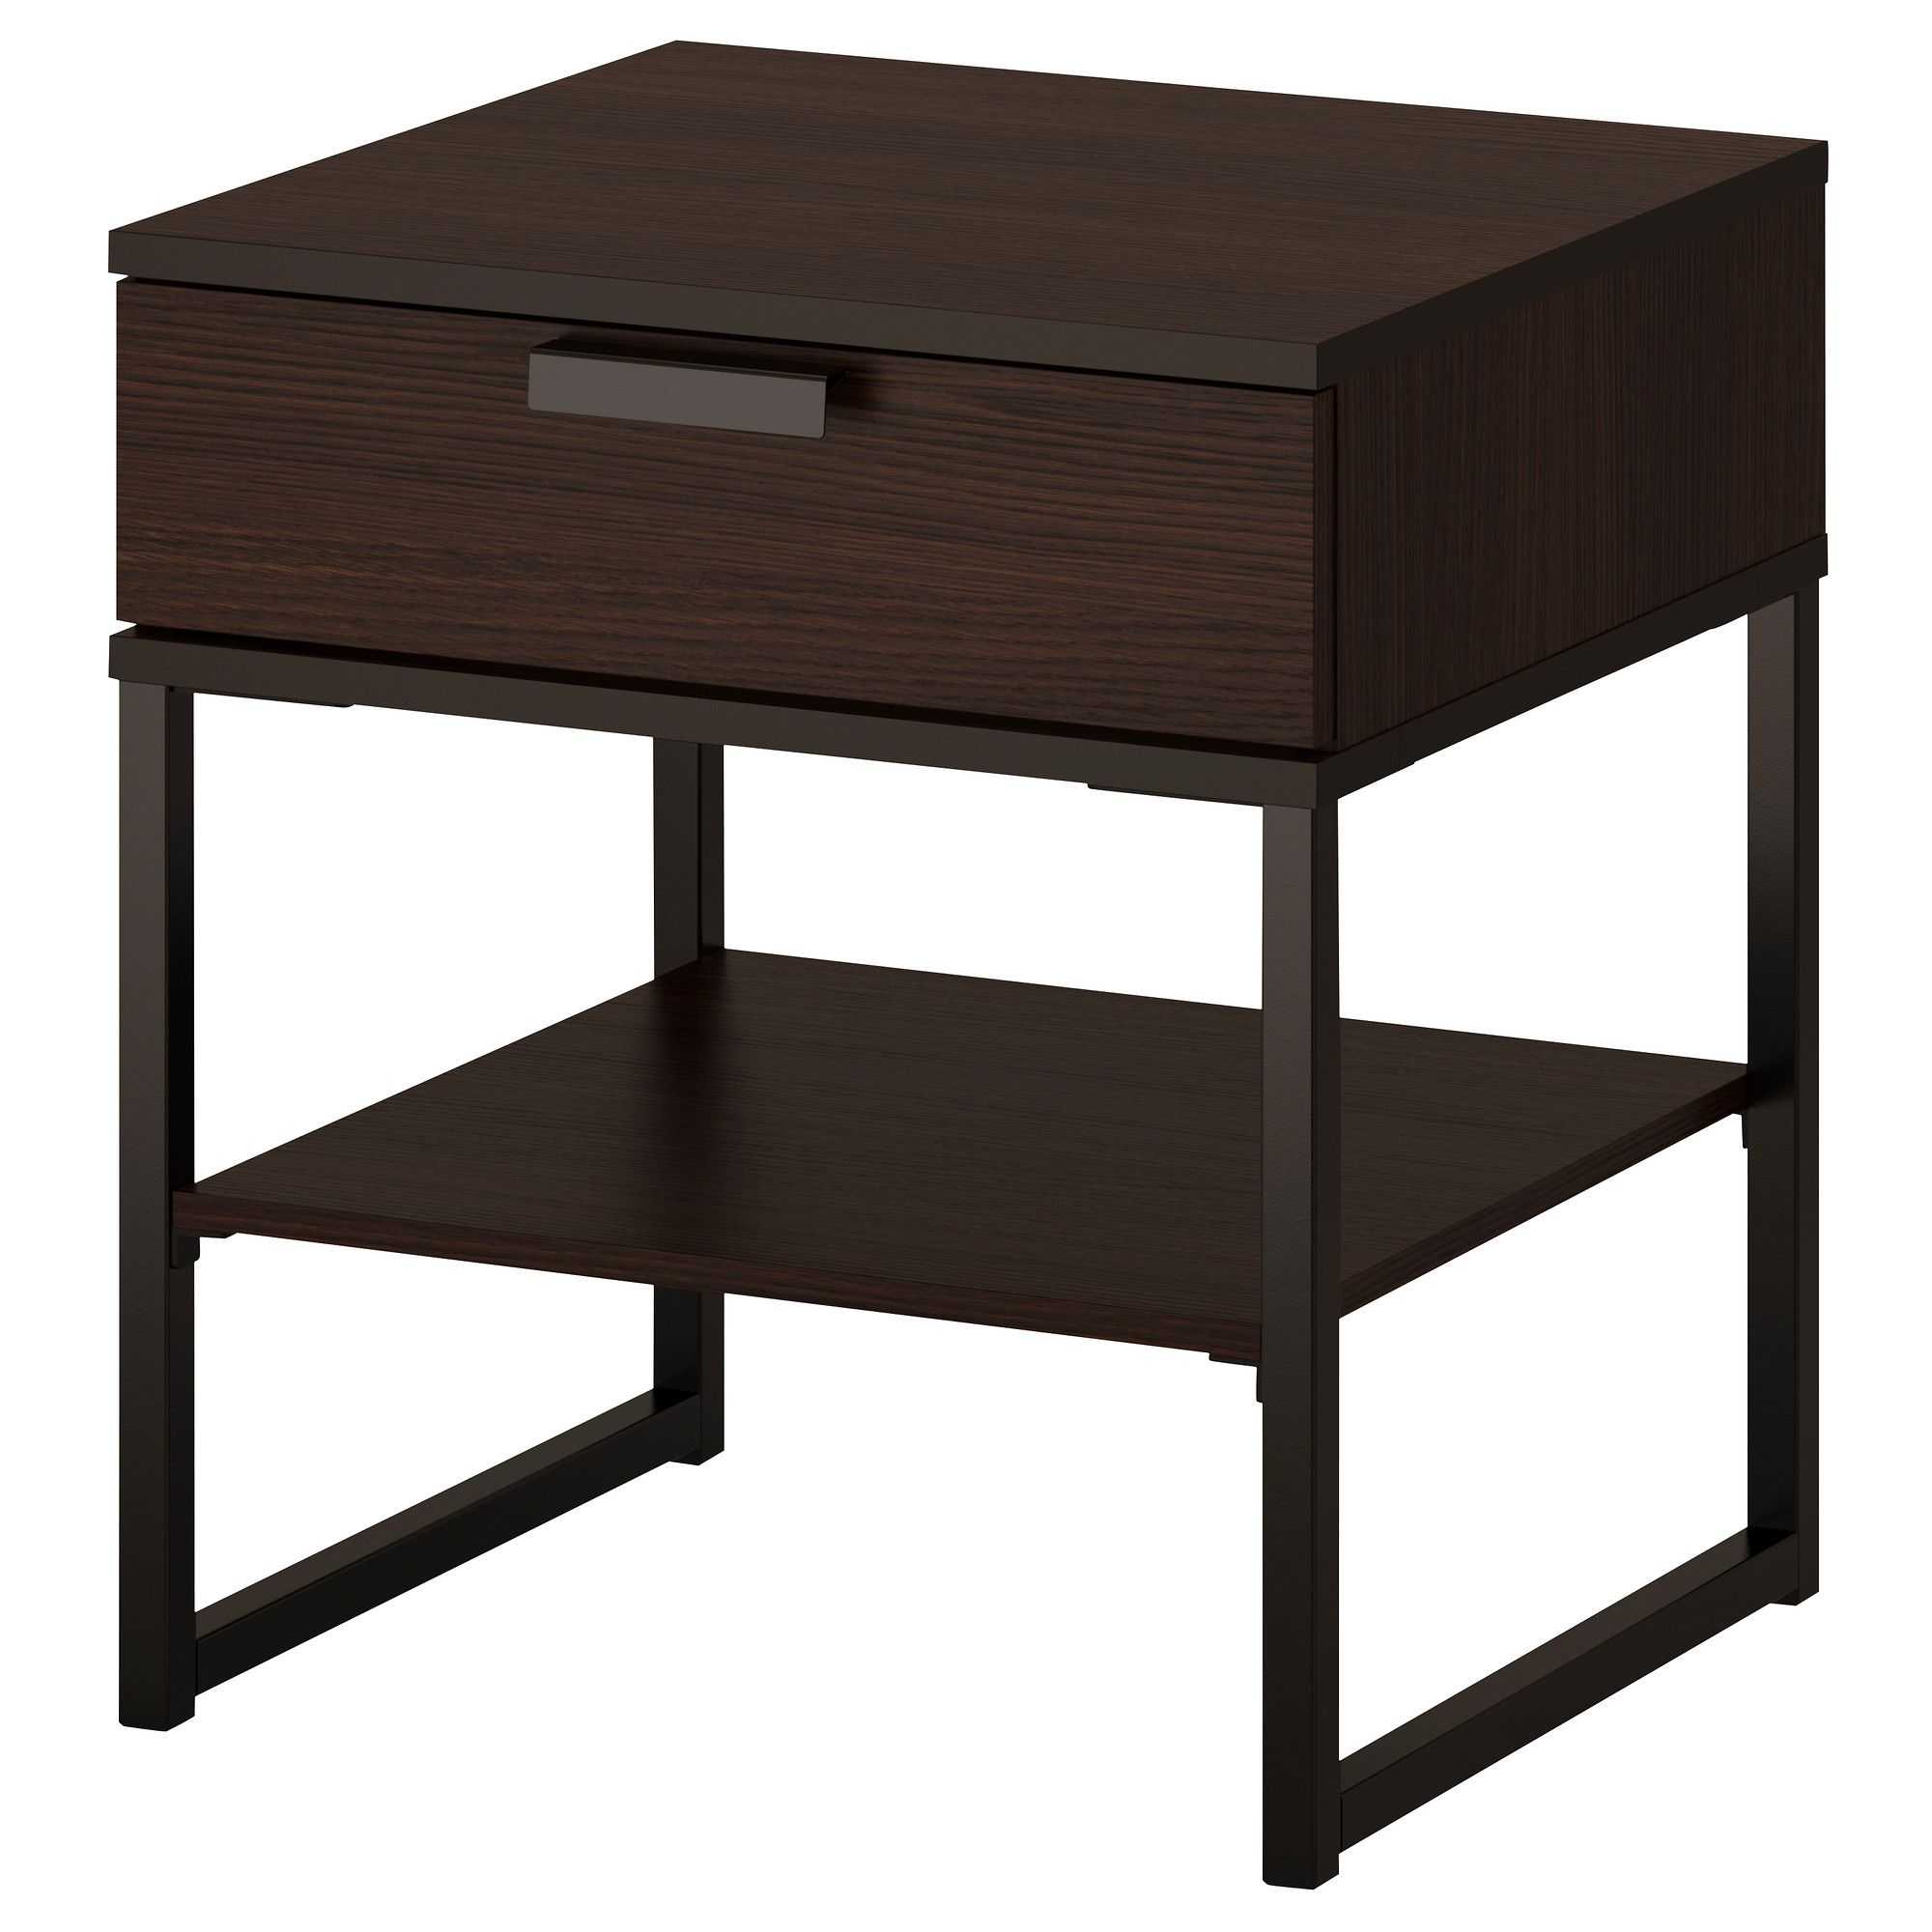 TRYSIL Nightstand, dark brown, black | Pinterest | Ablagetisch ...